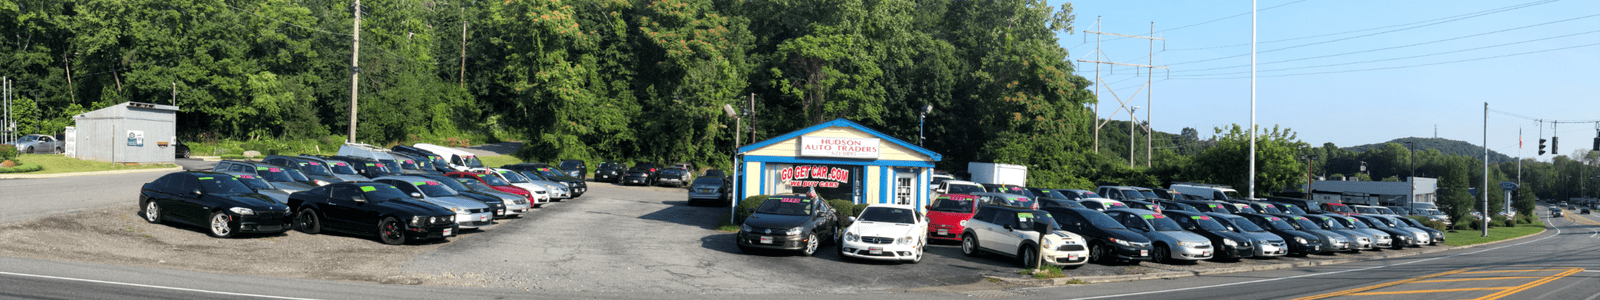 Hudson Auto Traders >> Gogetcar Used Cars Mahopac Ny Pre Owned Autos New York